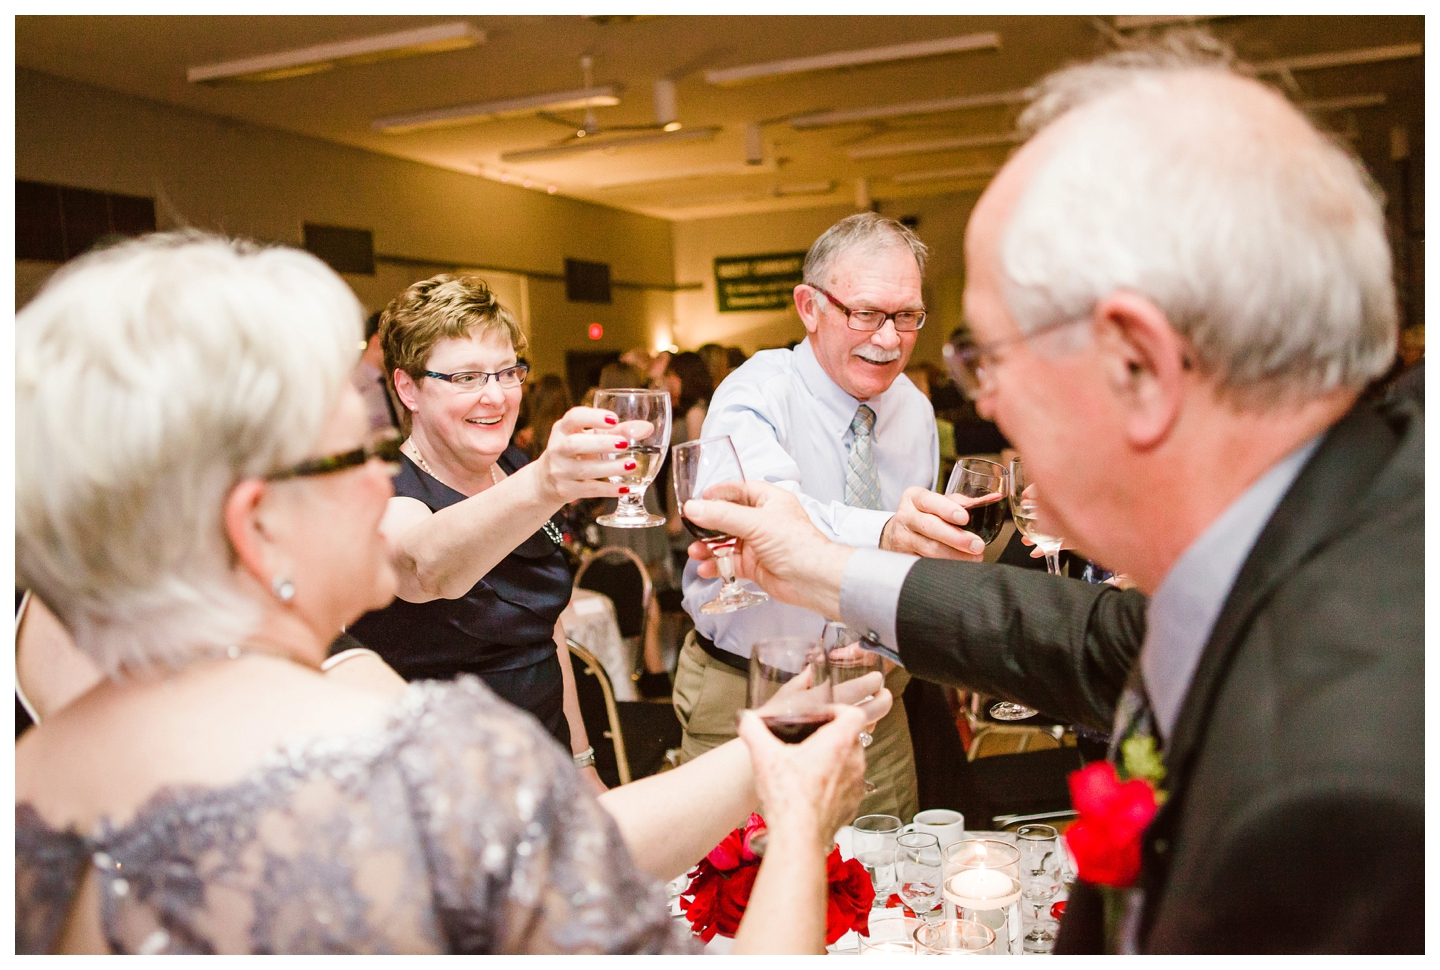 Toasts at Calgary Wedding reception